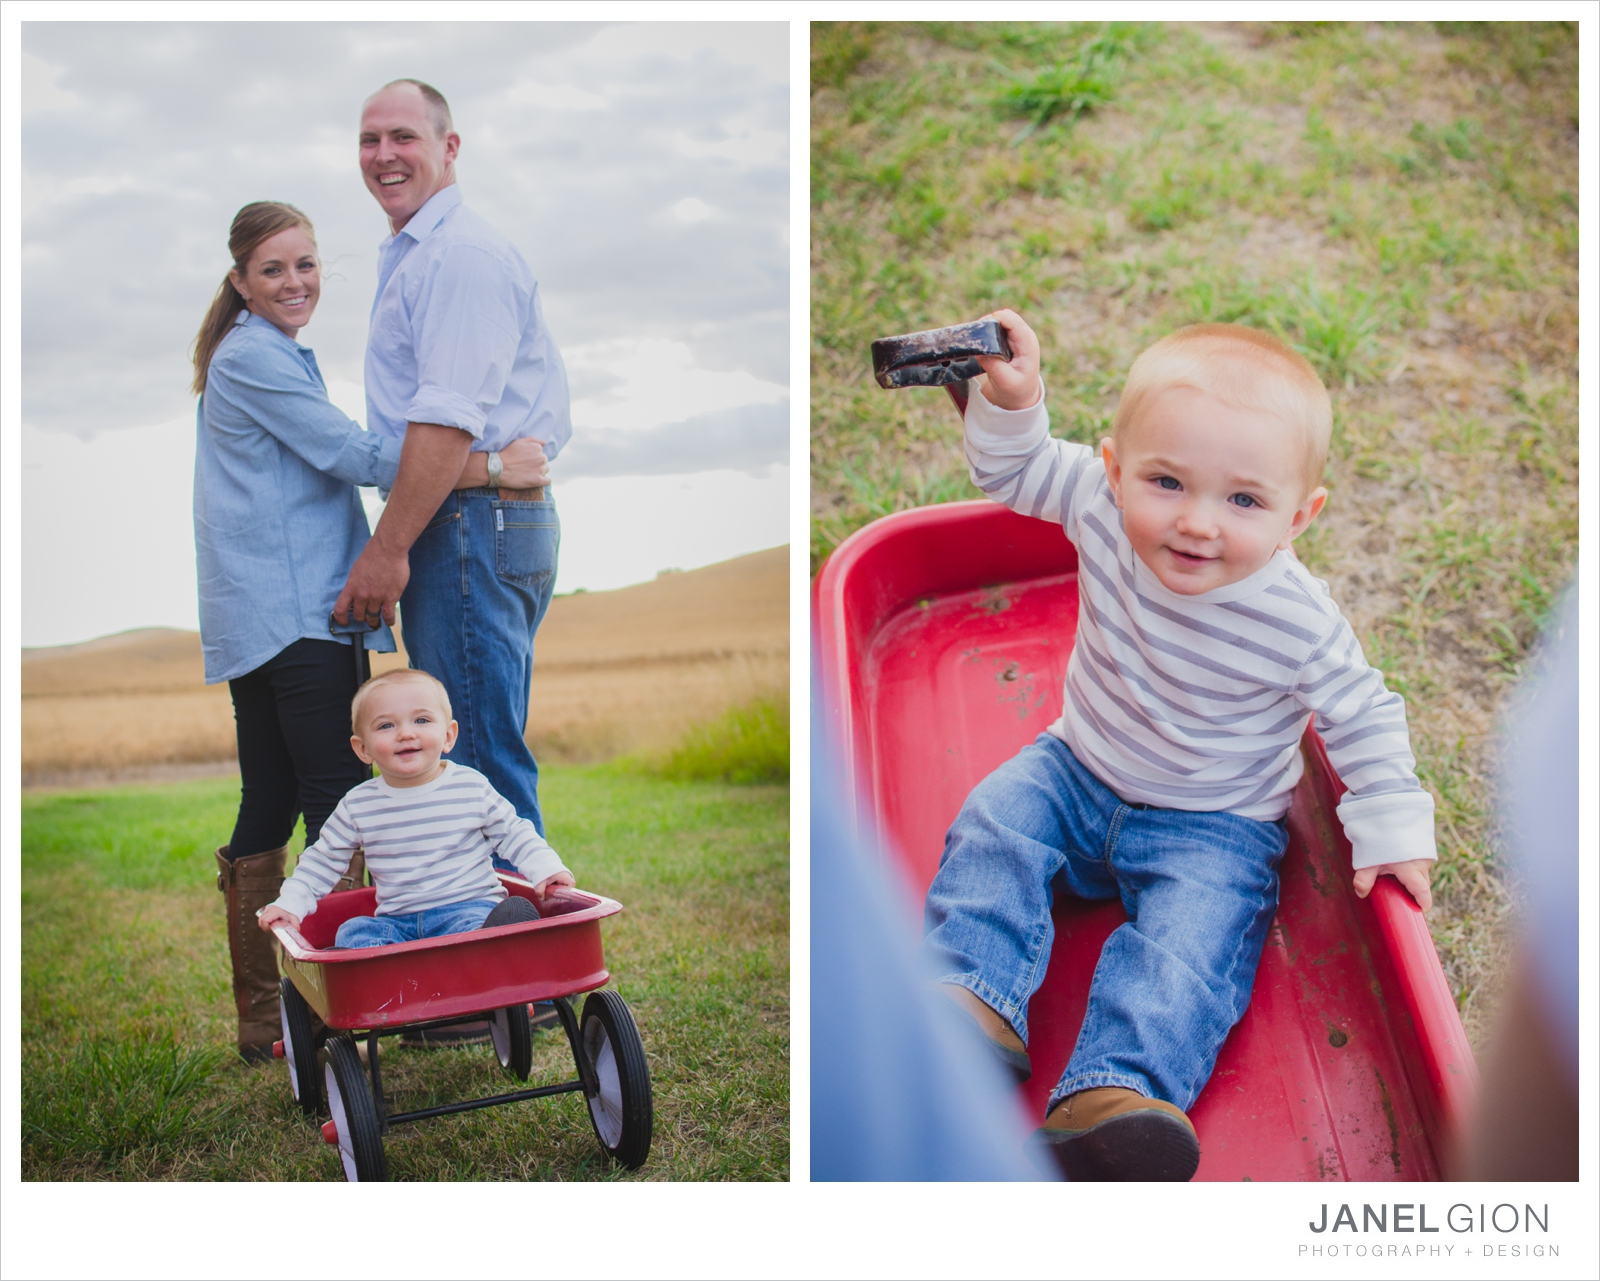 North-Idaho-Family-Children-Photographer-Year-in-Review-Contest-2013-Lifestyle-Family-Portraits-by-Janel-Gion-Photography_0071.jpg